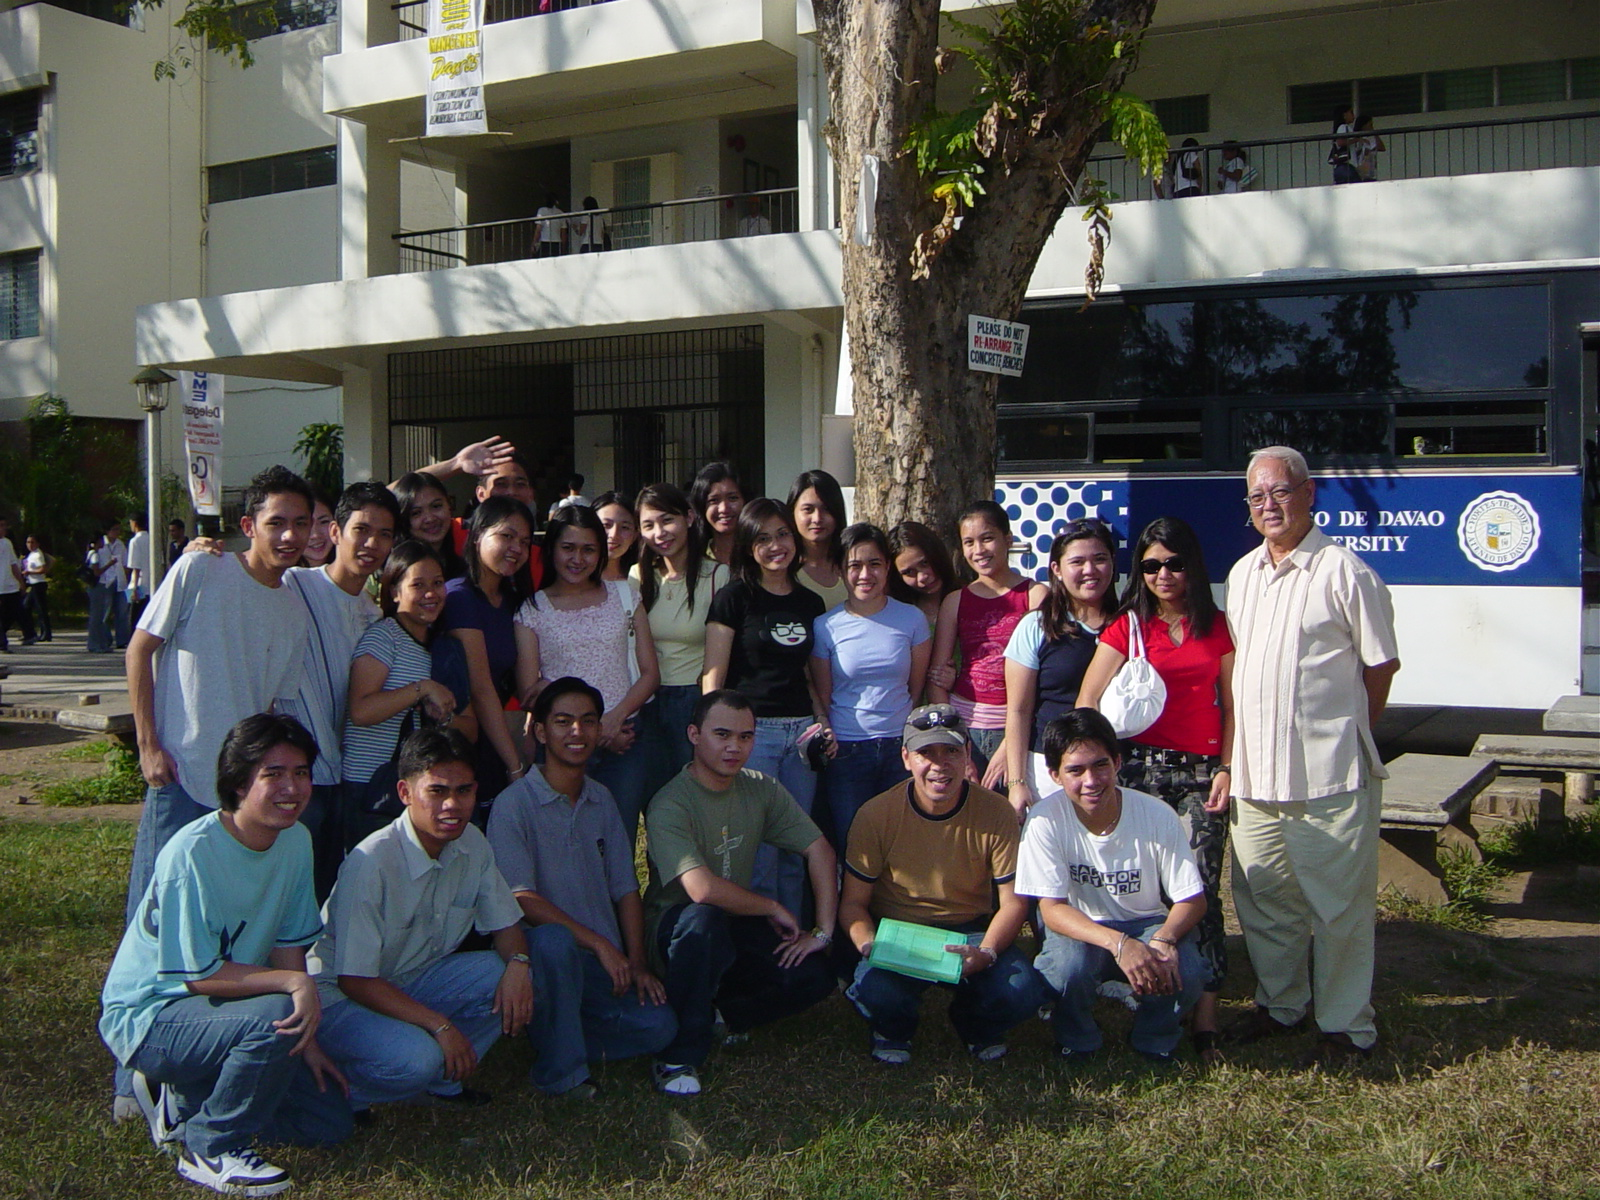 Cathy with her classmates, delegates and Prof. Godofredo Eding from Ateneo de Davao University together with Fr. Antonio Samson, SJ (then University President of X.U.) at Xavier University Cagayan de Oro City during the 2005 MBMYC (Mindanao Business and Management Youth Congress) | 2005